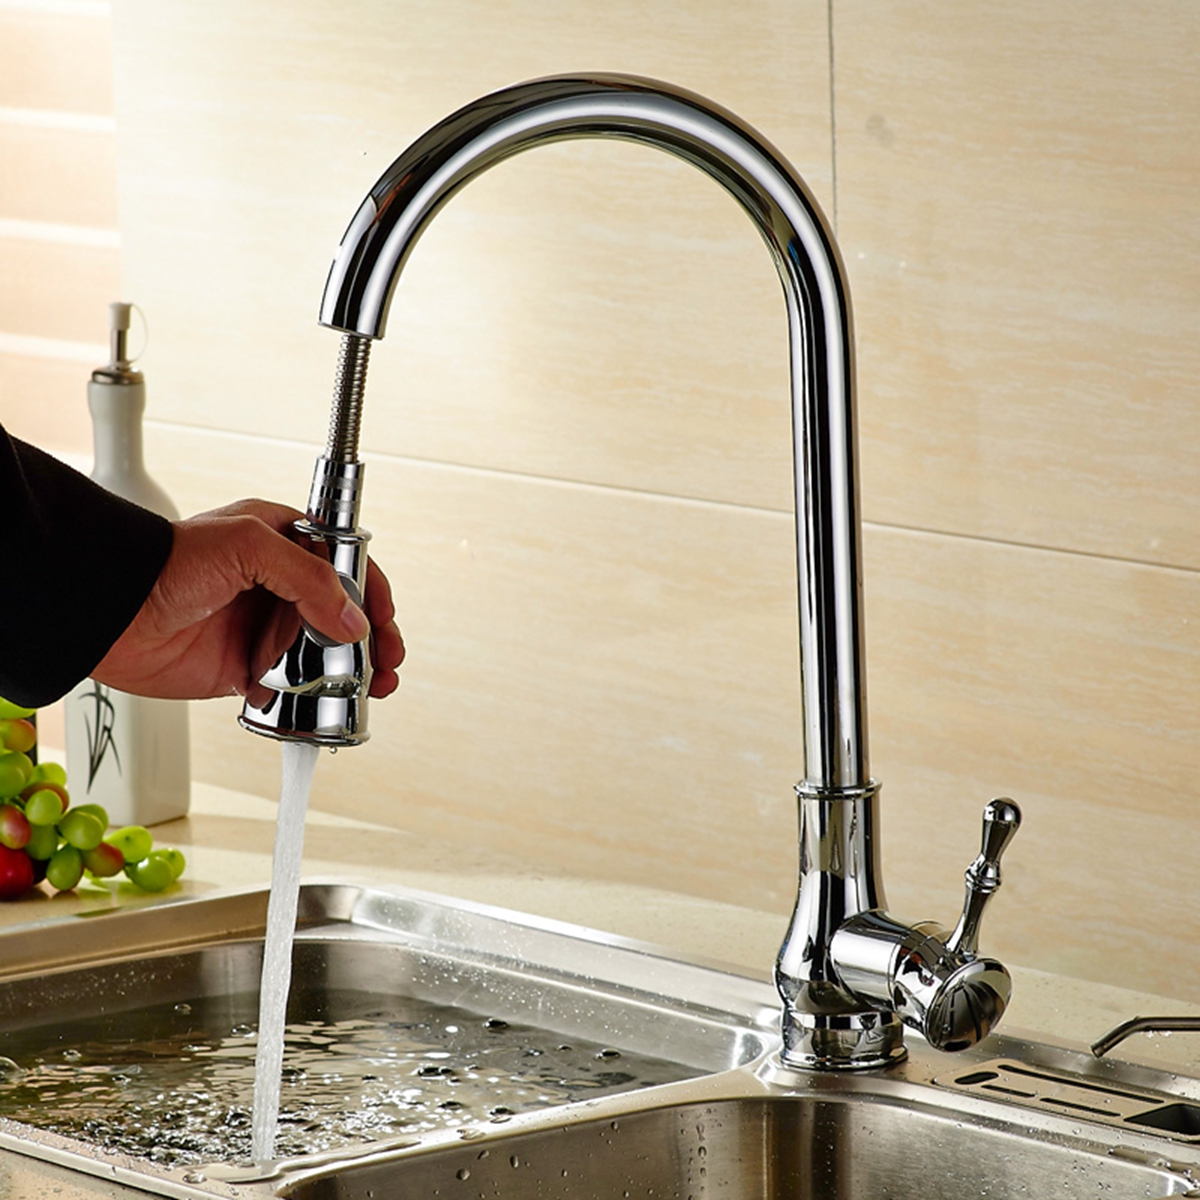 Xueqin Watermark&Wels Stainless Steel 18Inch Pull Down Kitchen Sink Faucet With Soap Dispenser наволочки other 45 45 18inch